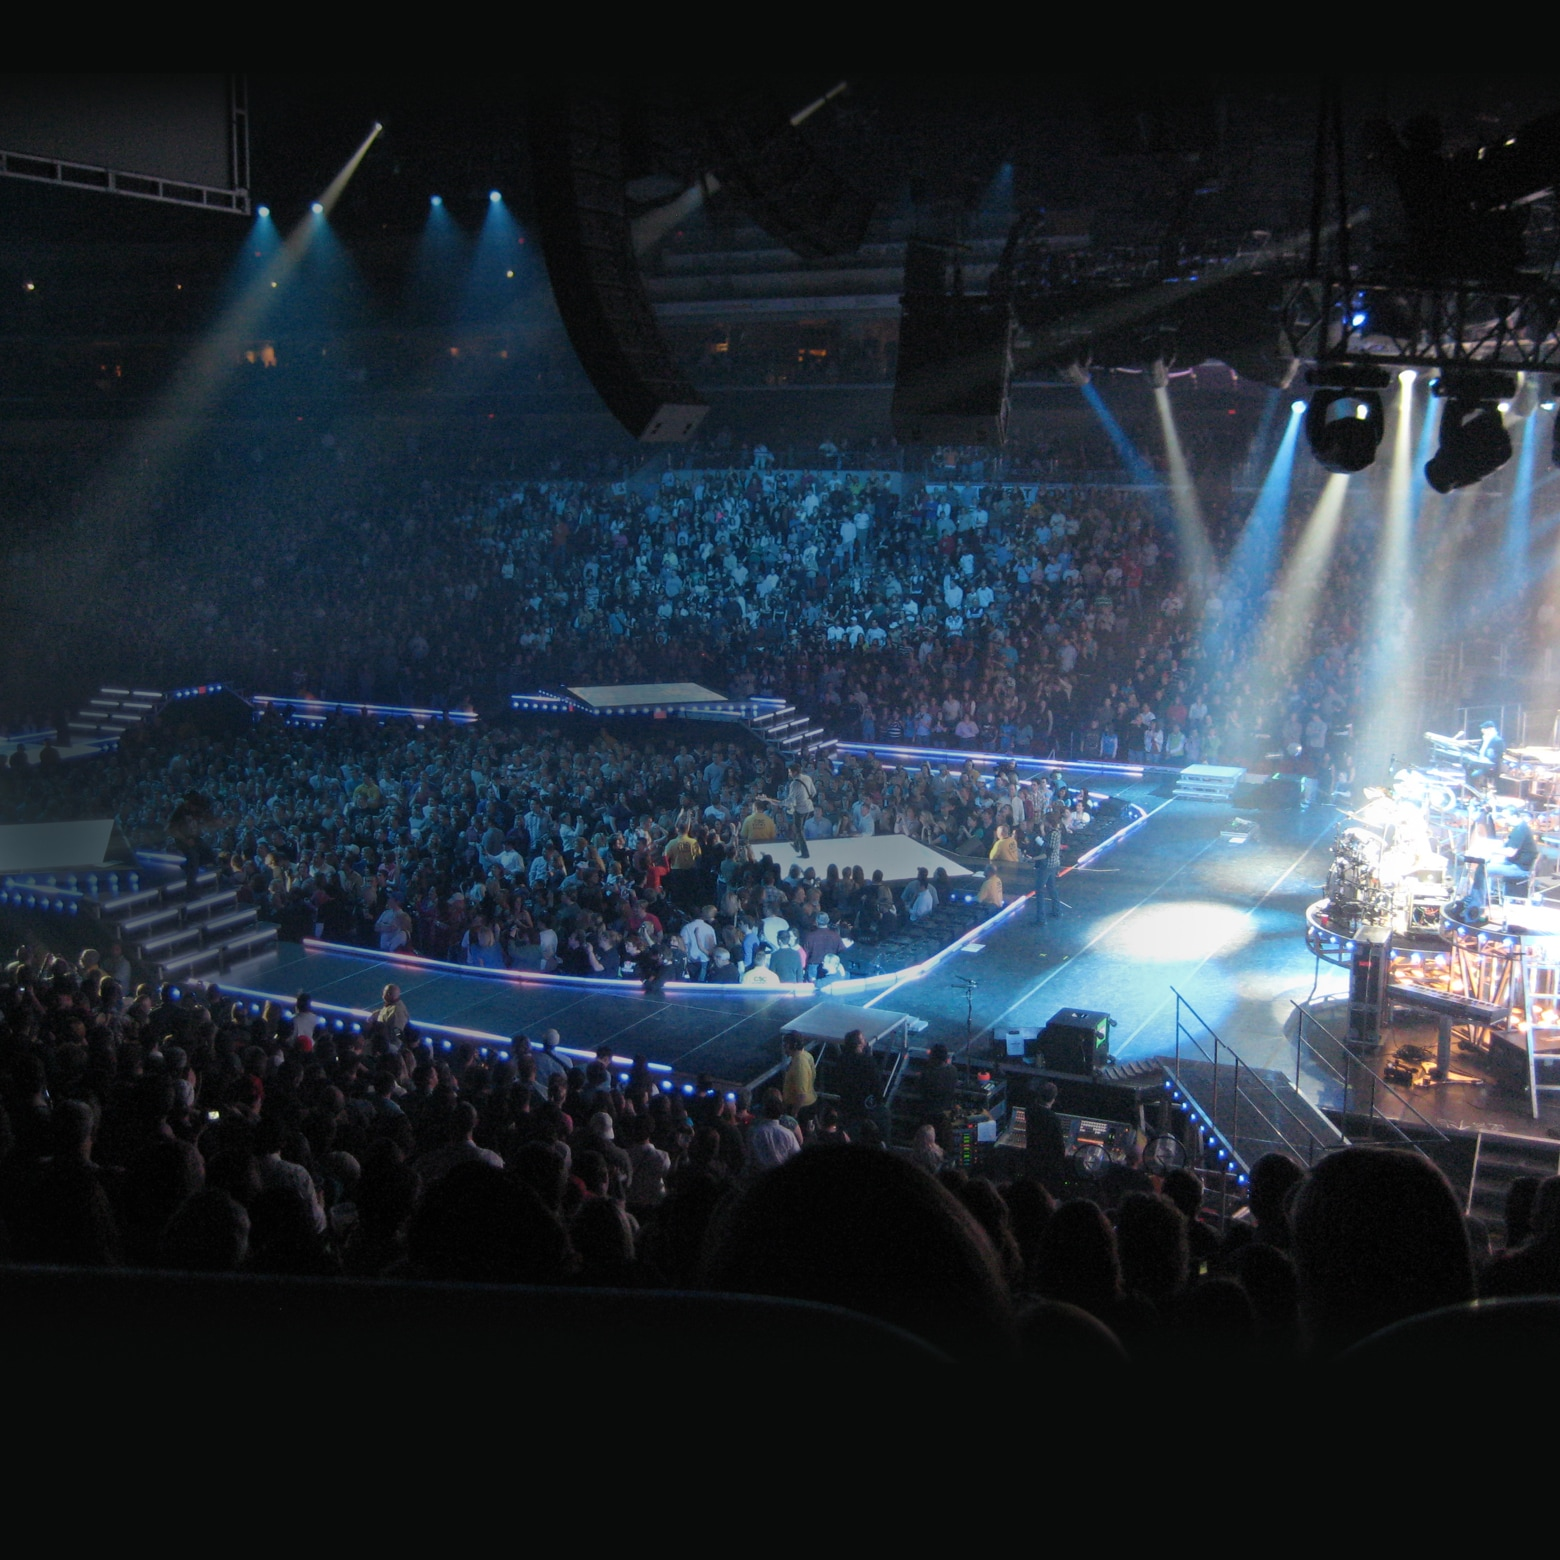 Large crowd at an indoor concert